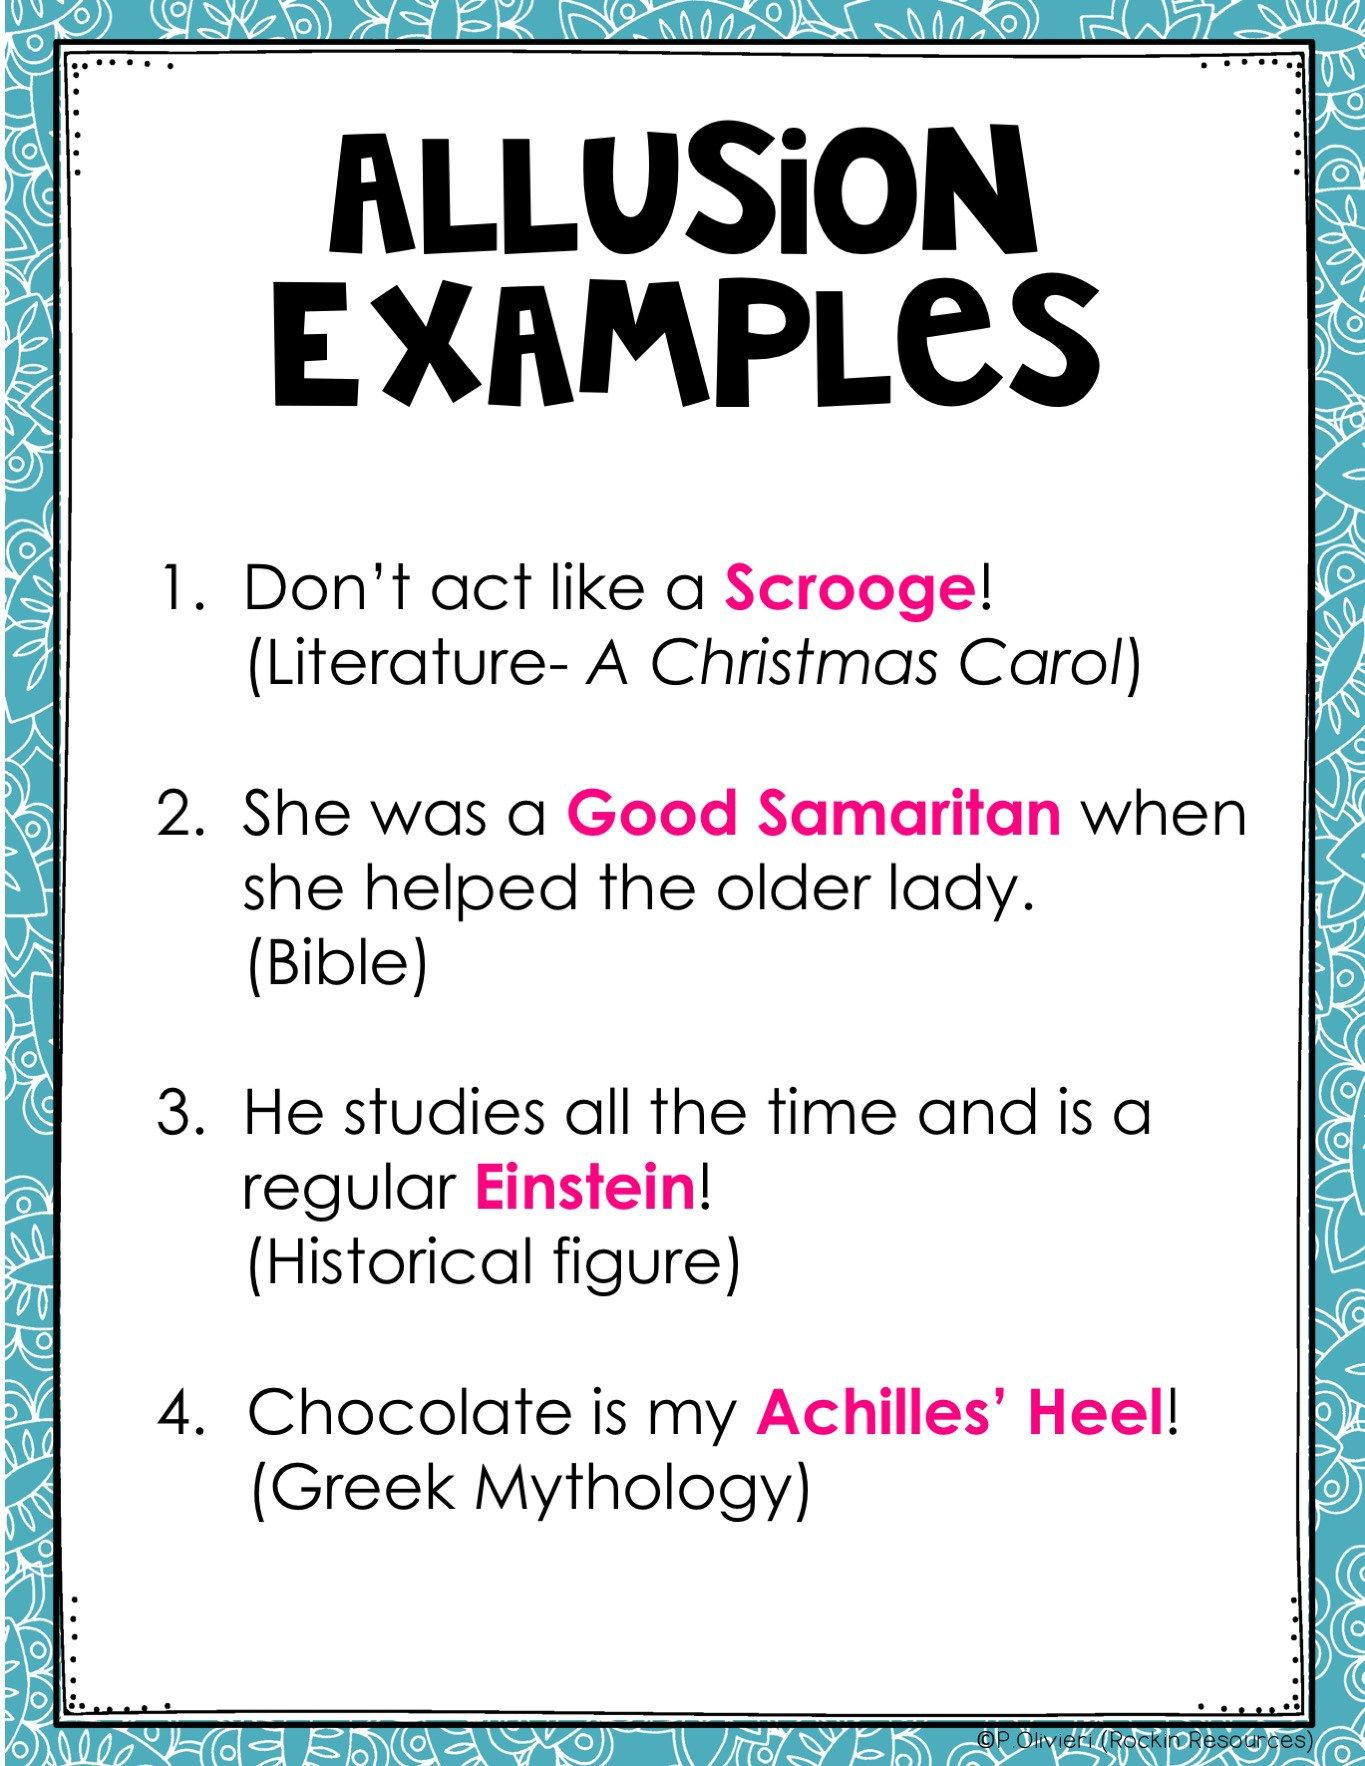 7 Allusion Examples For Kids